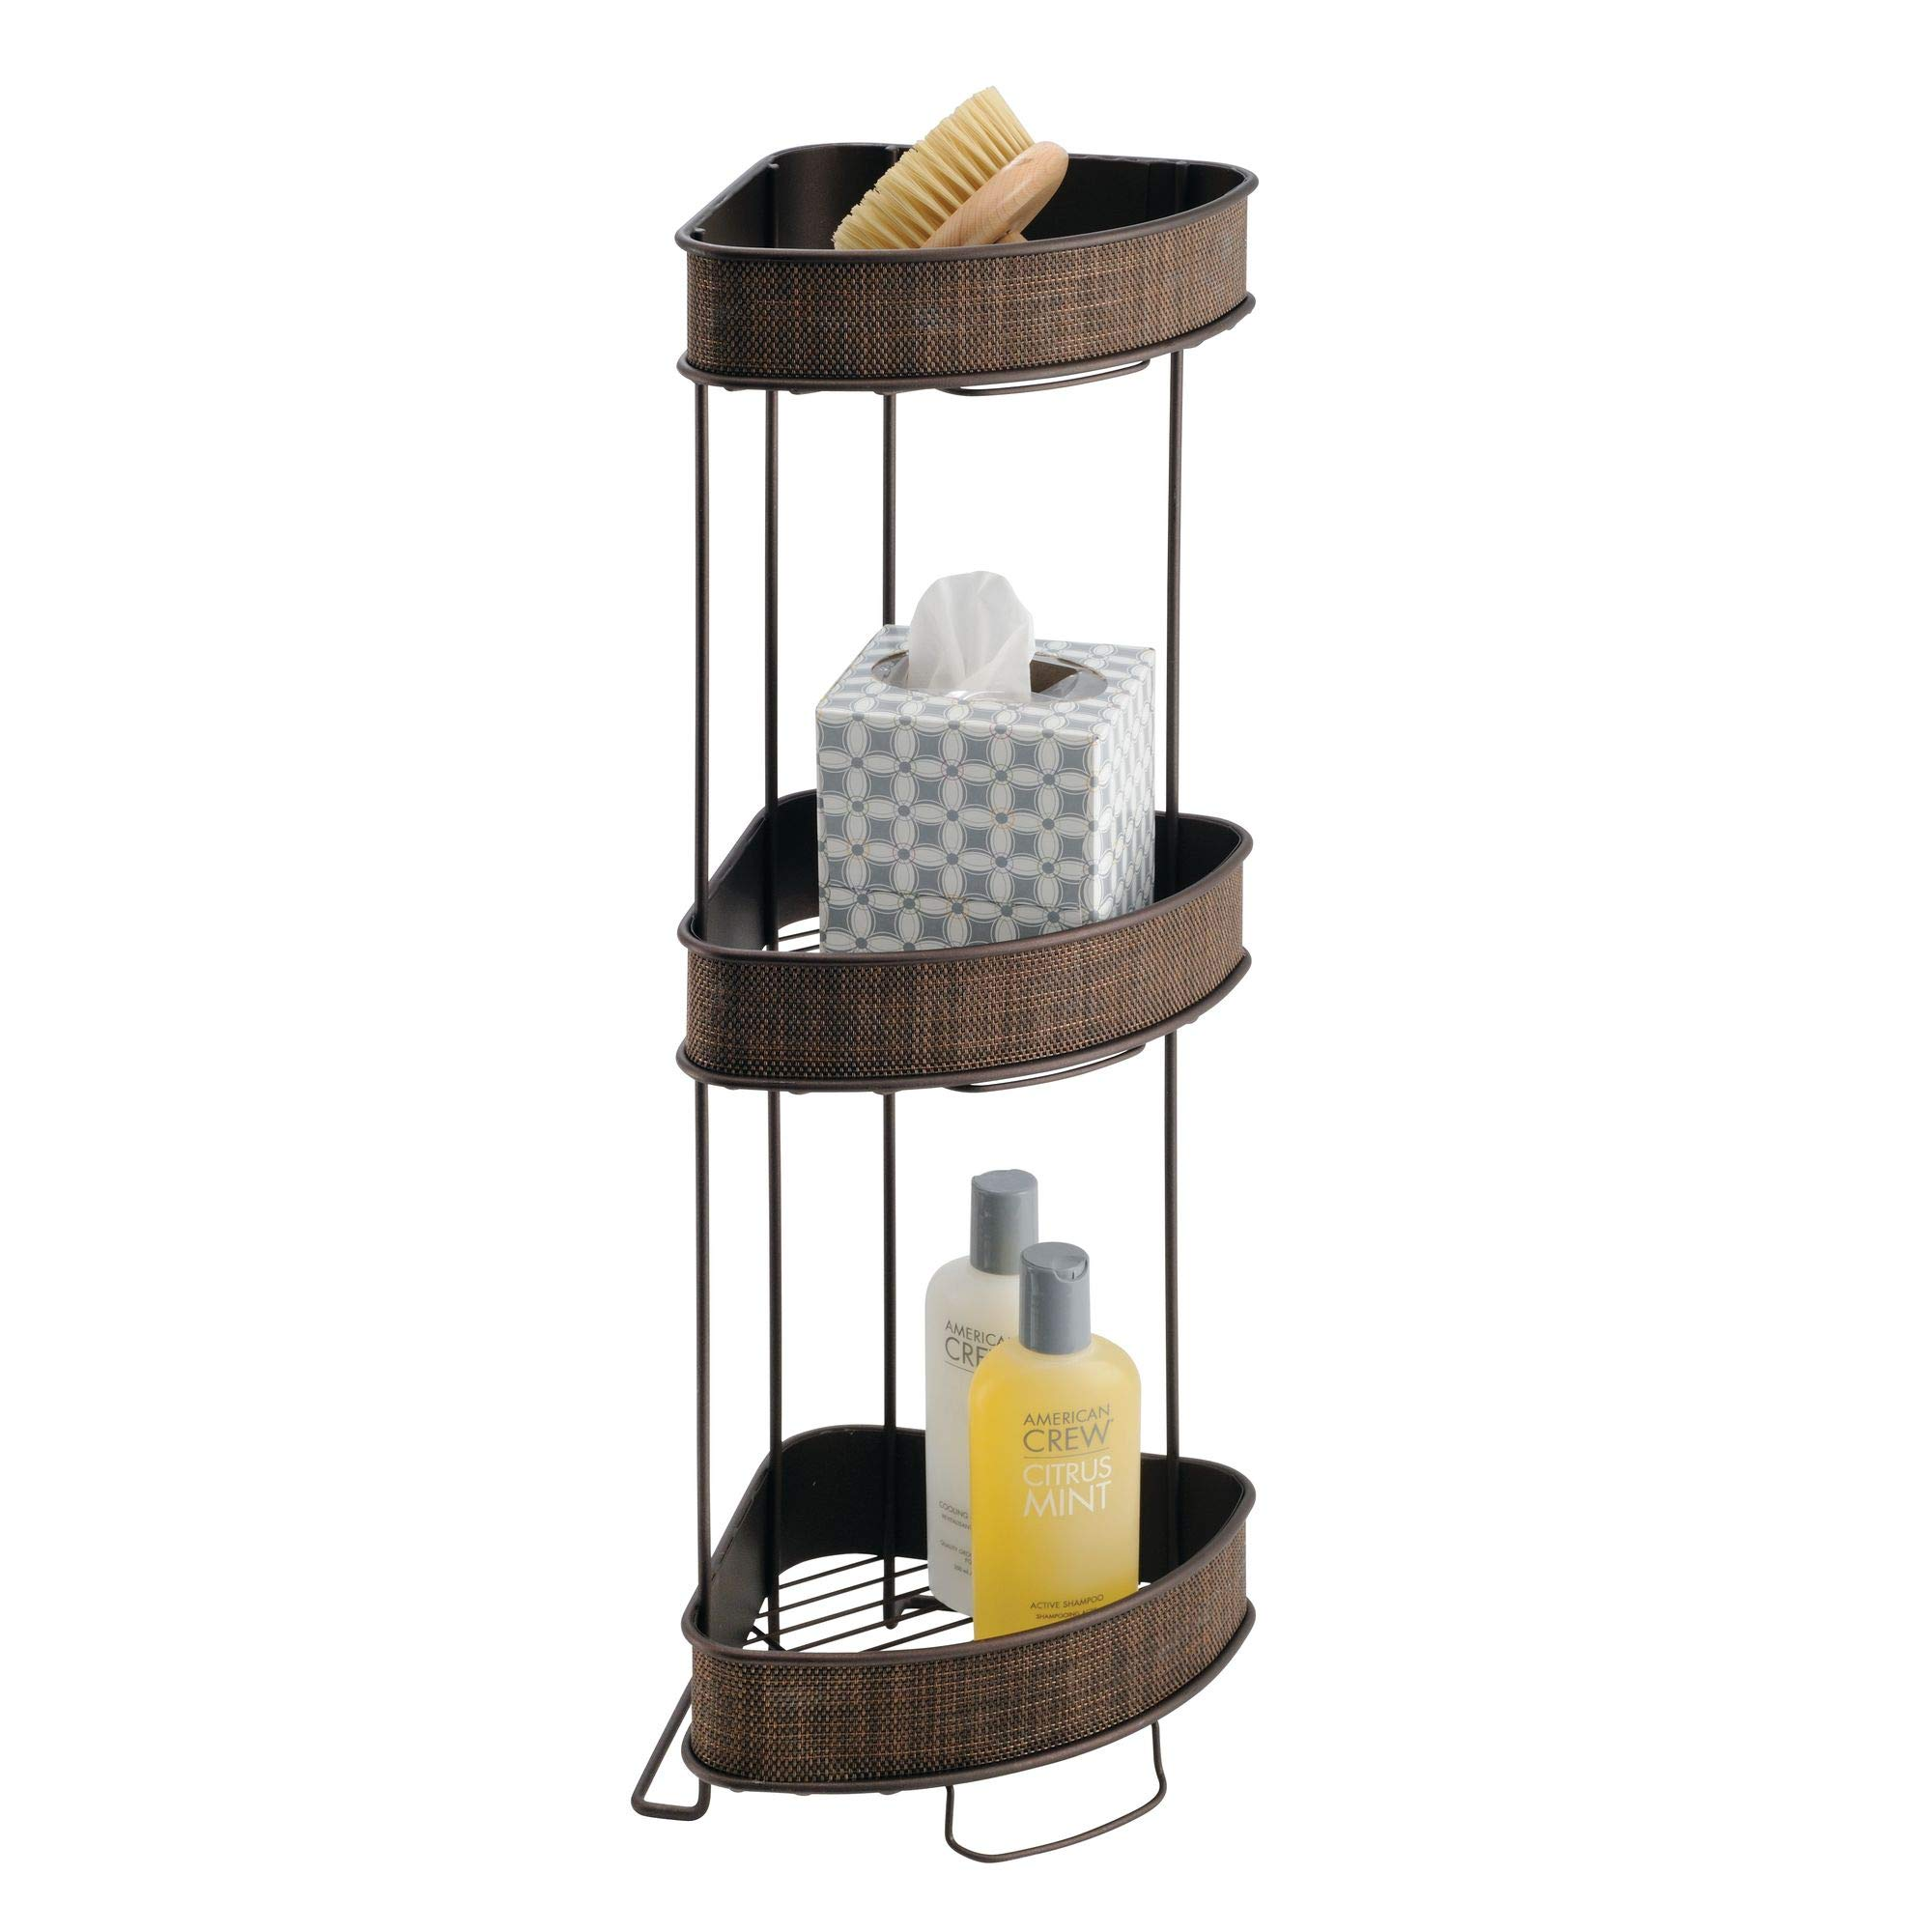 iDesign Twillo Metal Wire Corner Standing Shower Caddy 3-Tier Bath Shelf Baskets for Towels, Soap, Shampoo, Lotion, Accessories, by iDesign (Image #1)